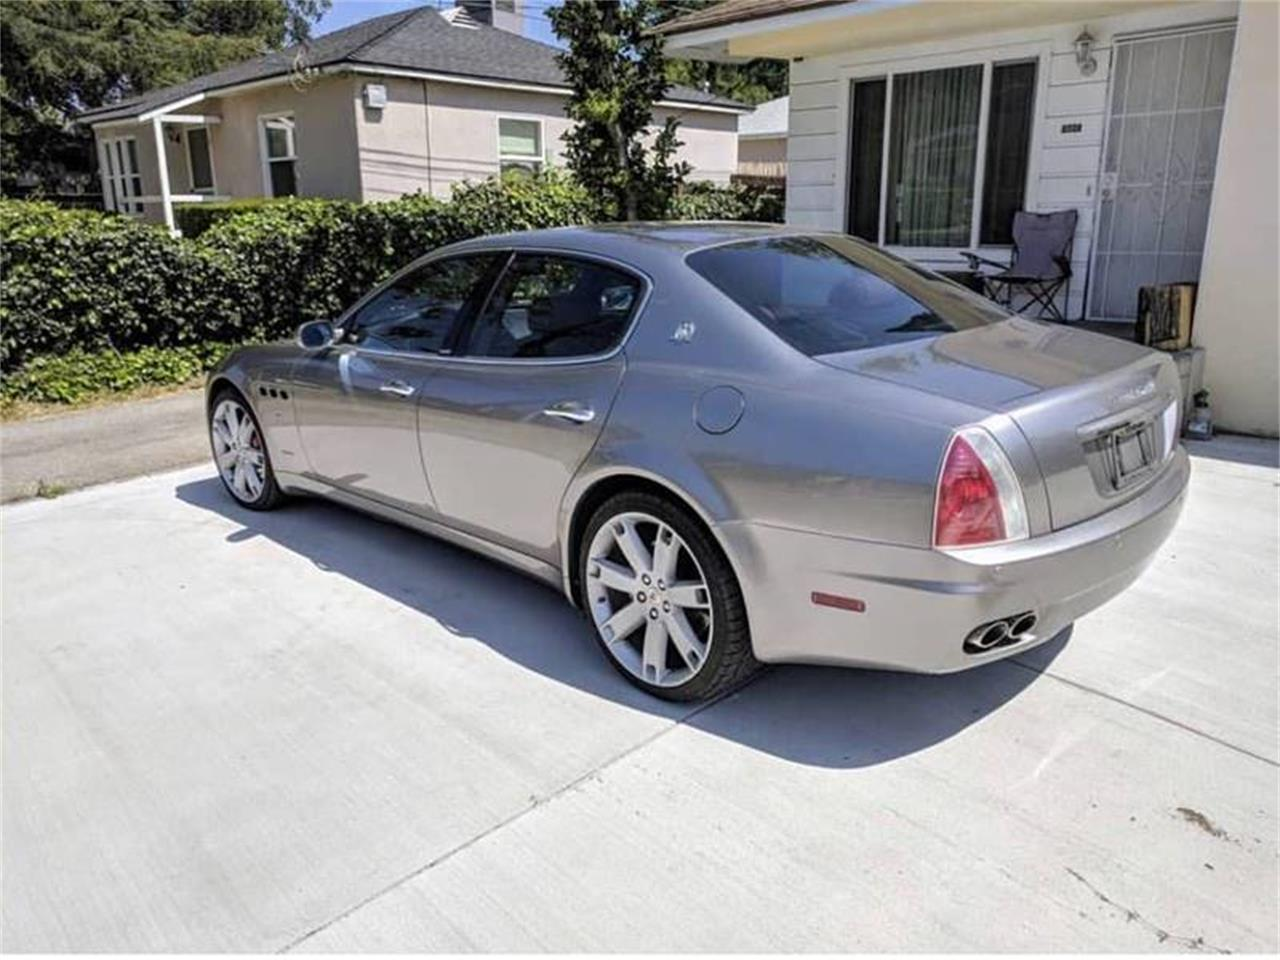 2007 Maserati Quattroporte for sale in Long Island, NY – photo 6